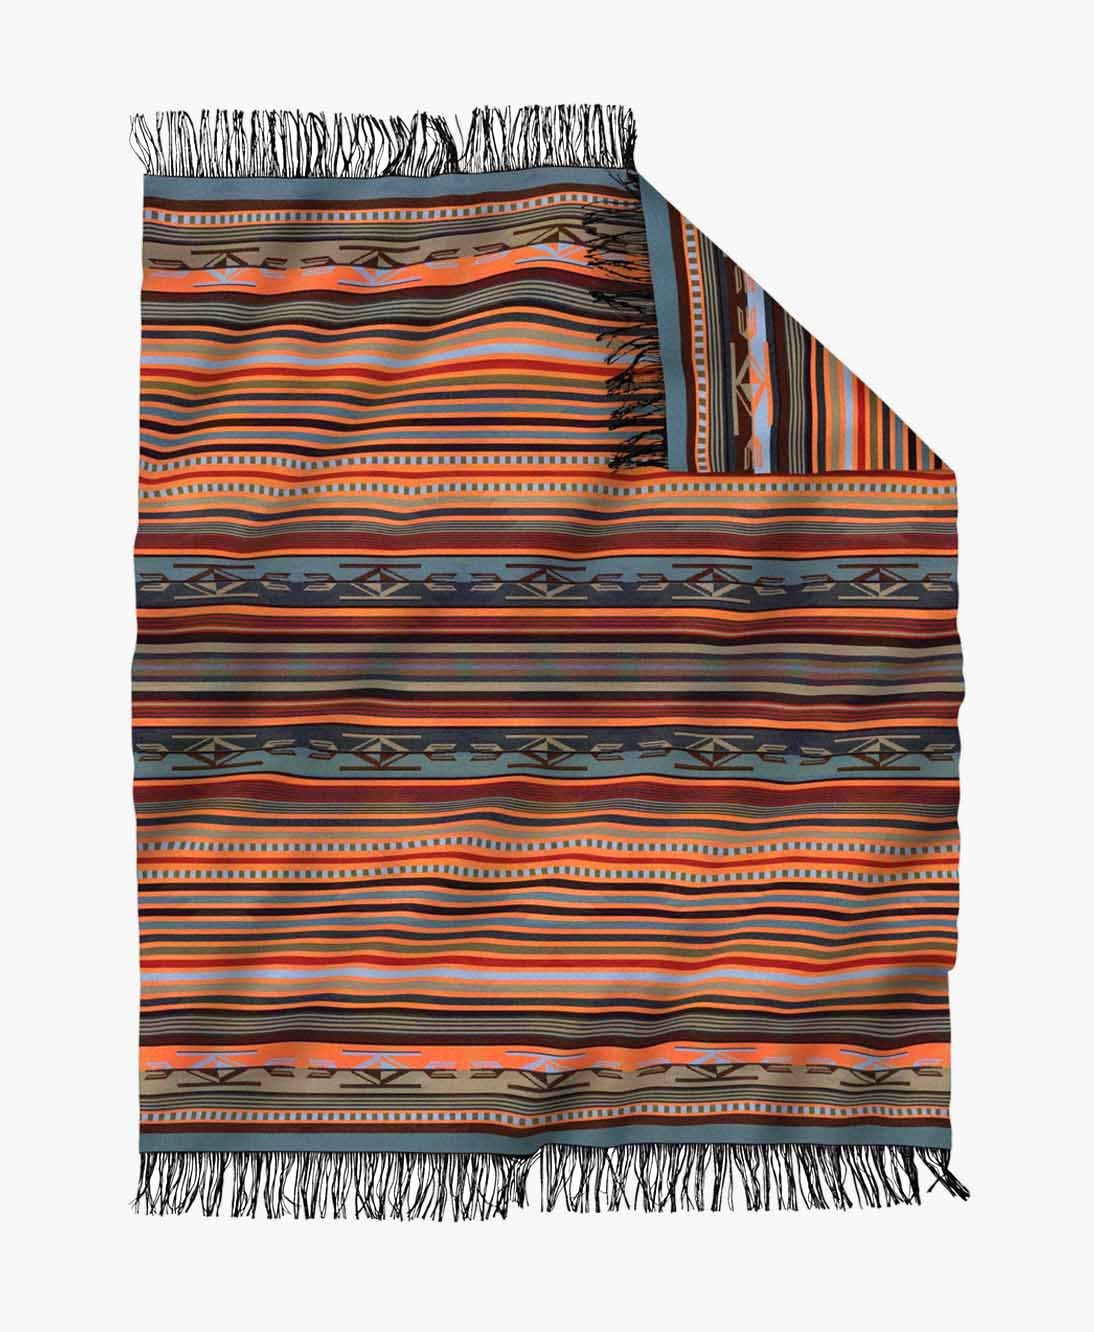 Chimayo Blanket Adobe